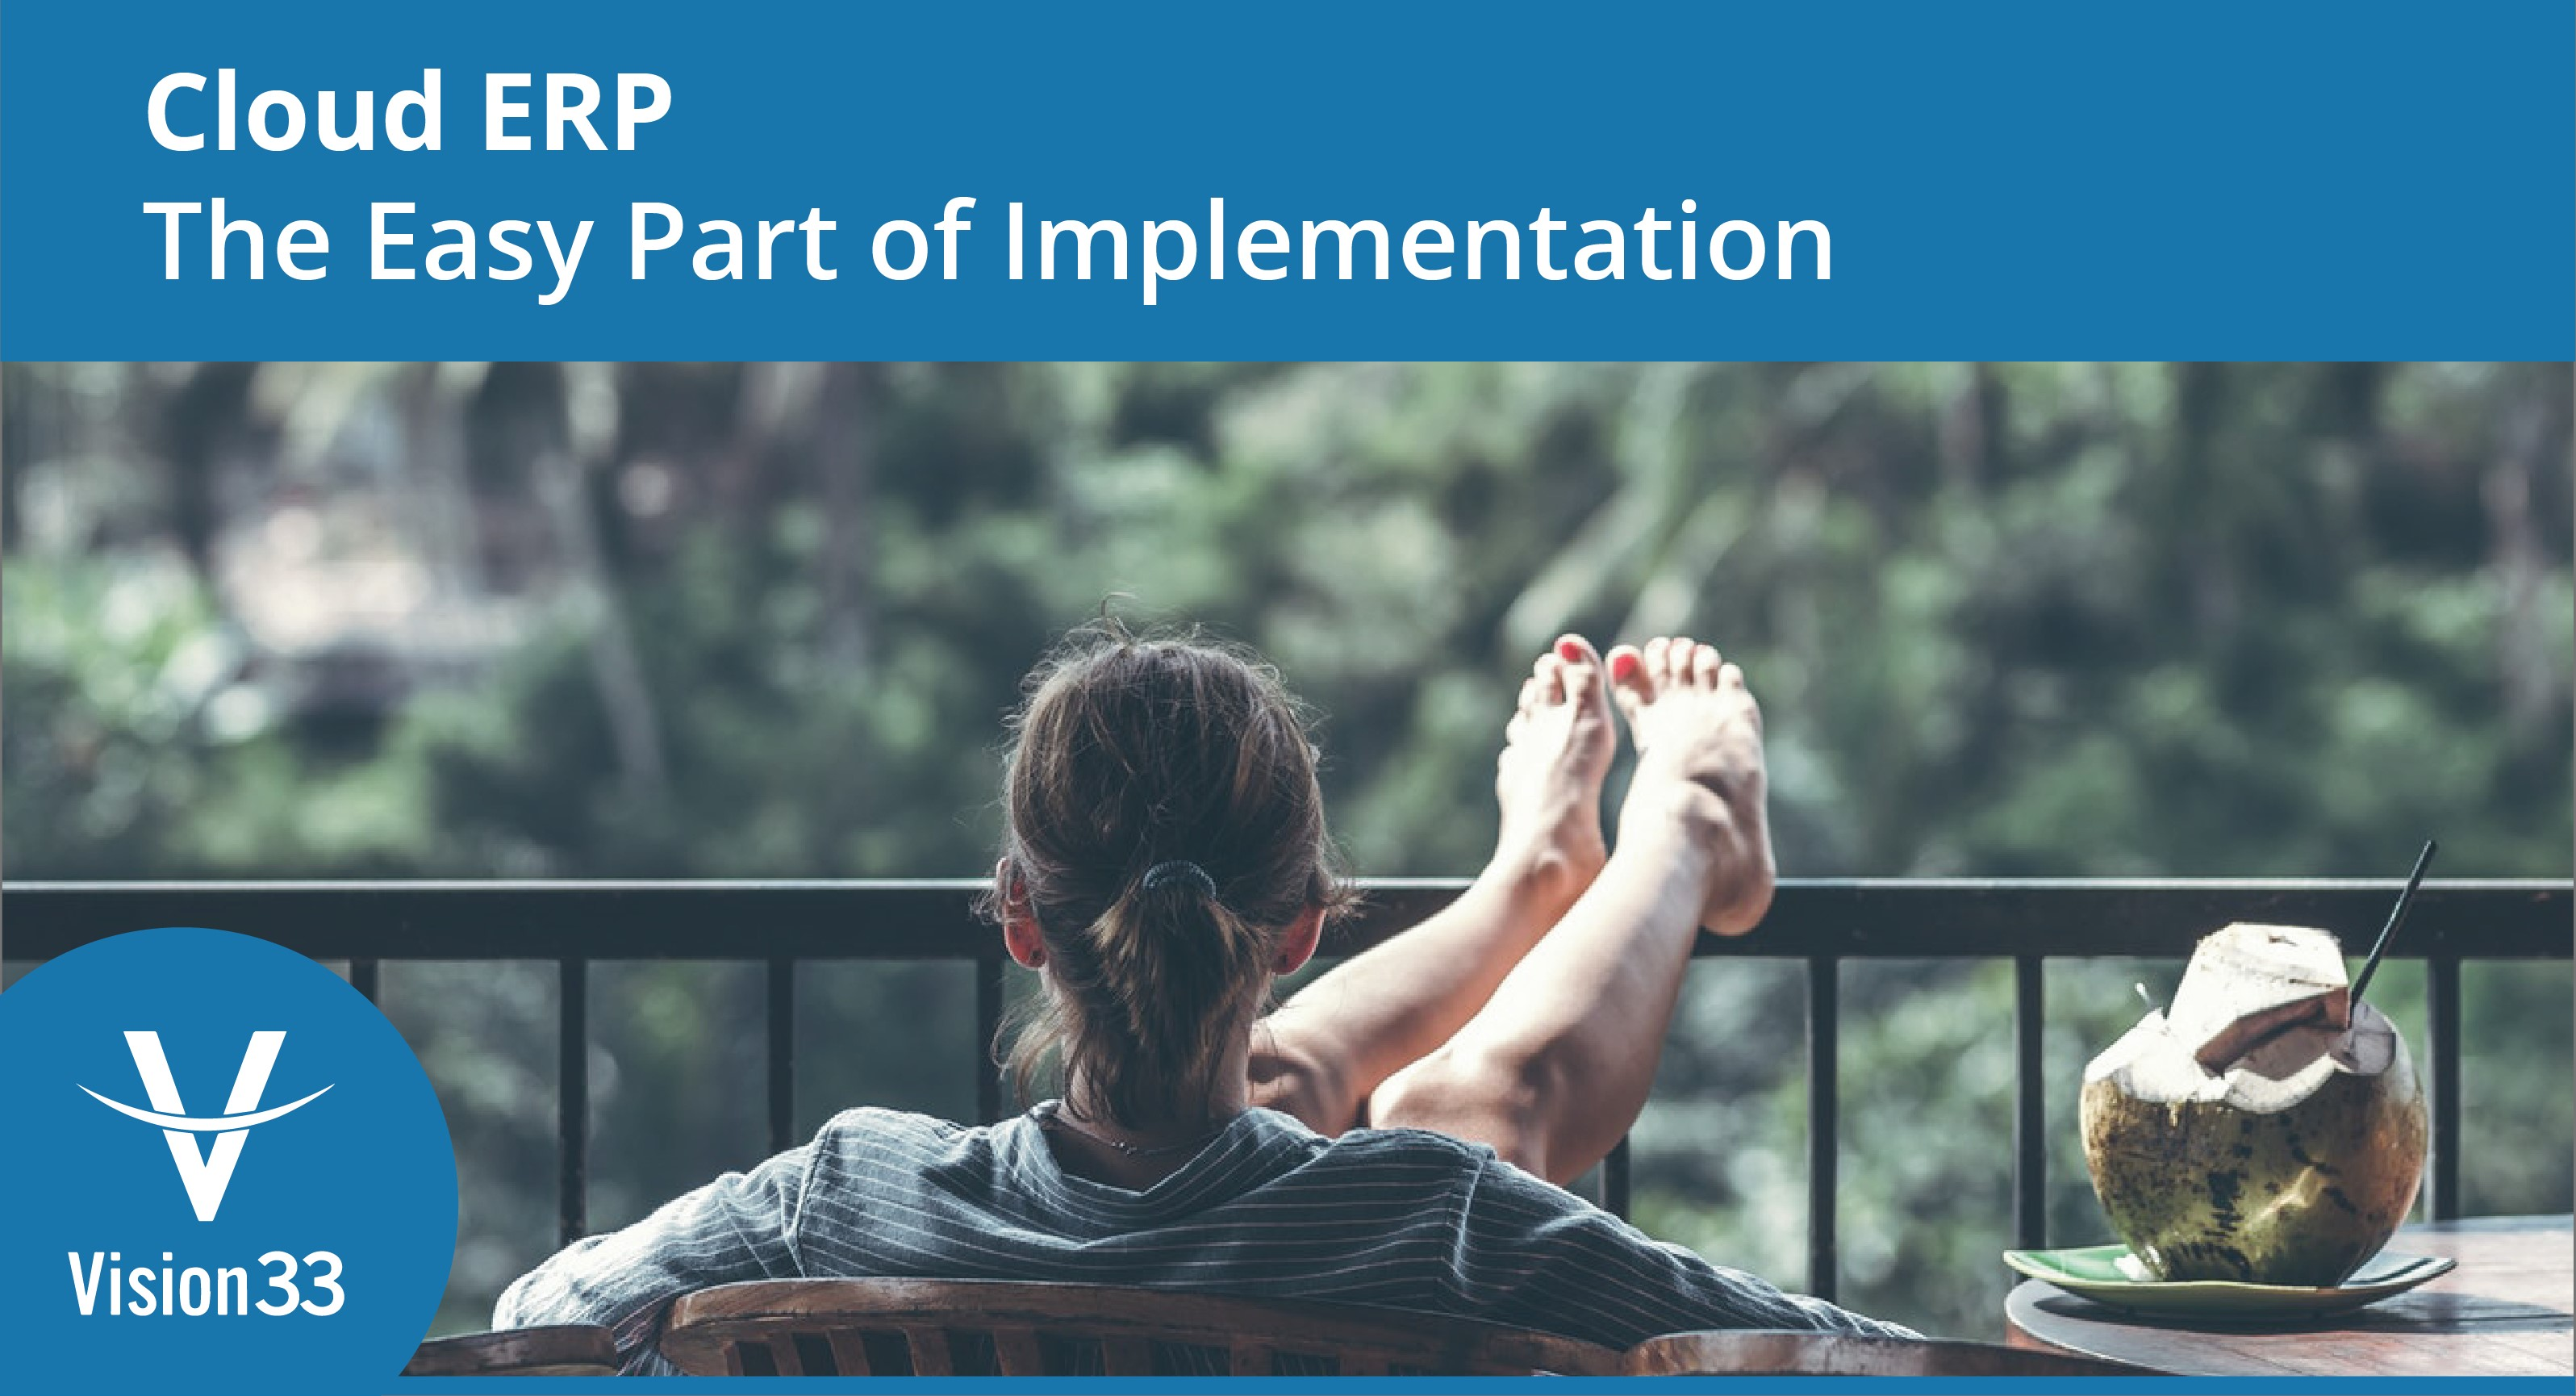 Cloud ERP The Easy Part of Implementation - No Button